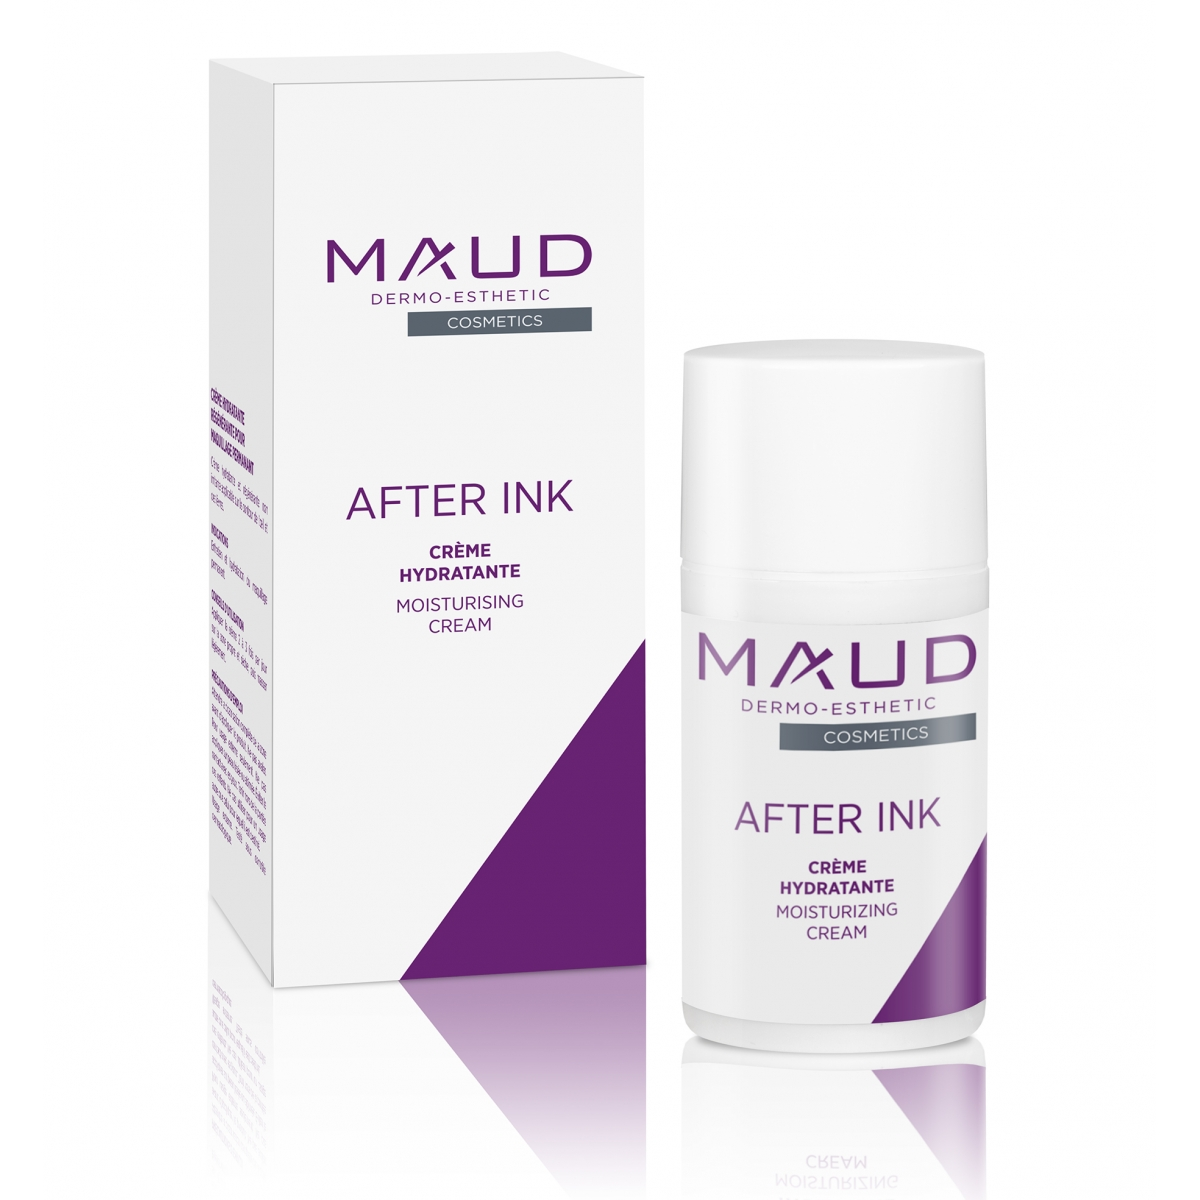 SOINS DERMOPIGMENTATION - MAUD COSMETICS - CREME CICATRISANTE POST MAQUILLAGE PERMANENT AFTER INK (15 ml)